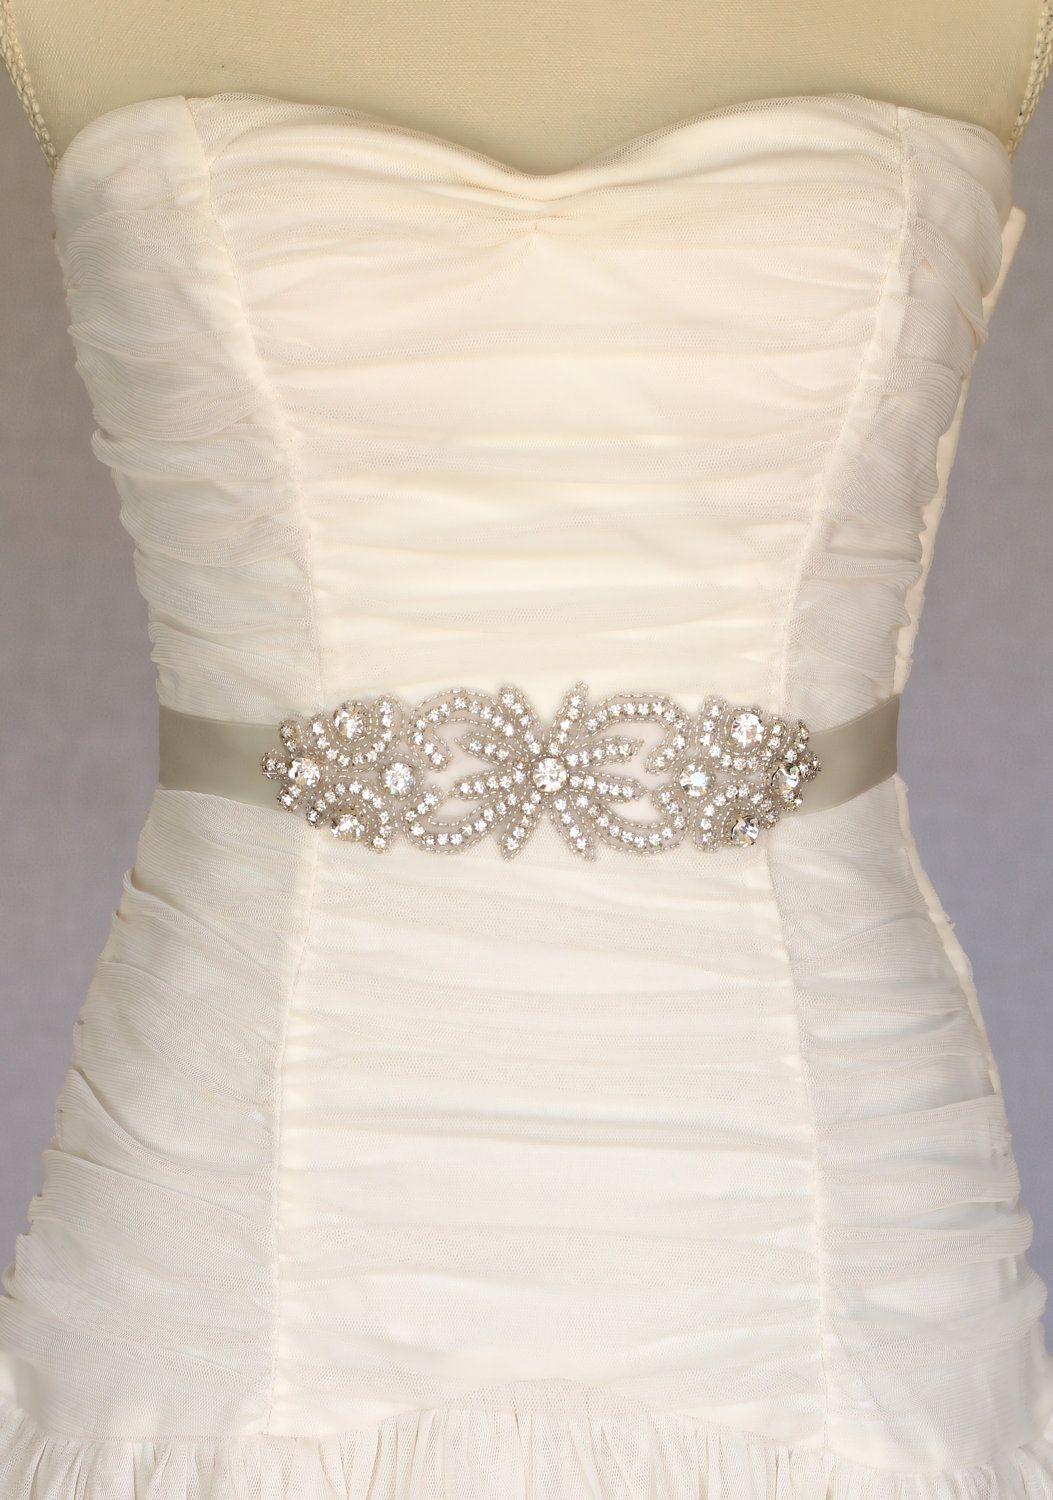 Bella Bridal Belt Sash Wedding Dress By Amienoeldesigns 58 00